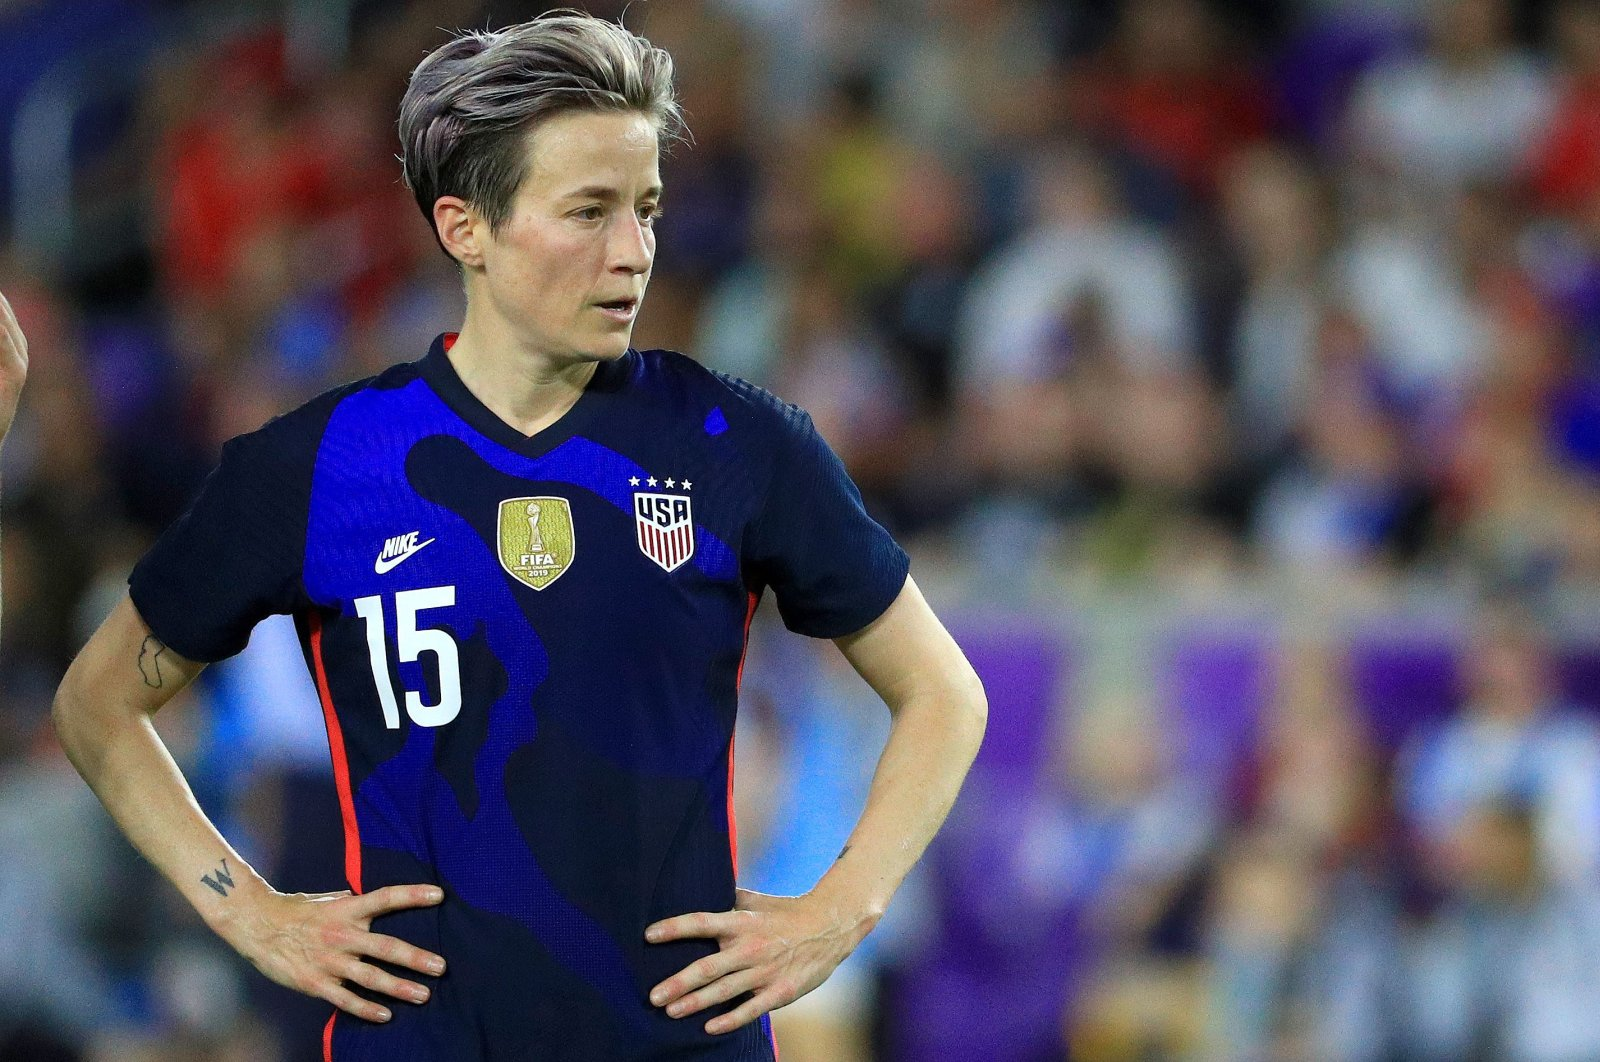 Megan Rapinoe of the U.S. looks on during a match against England in the SheBelieves Cup, March 05, 2020. (AFP Photo)